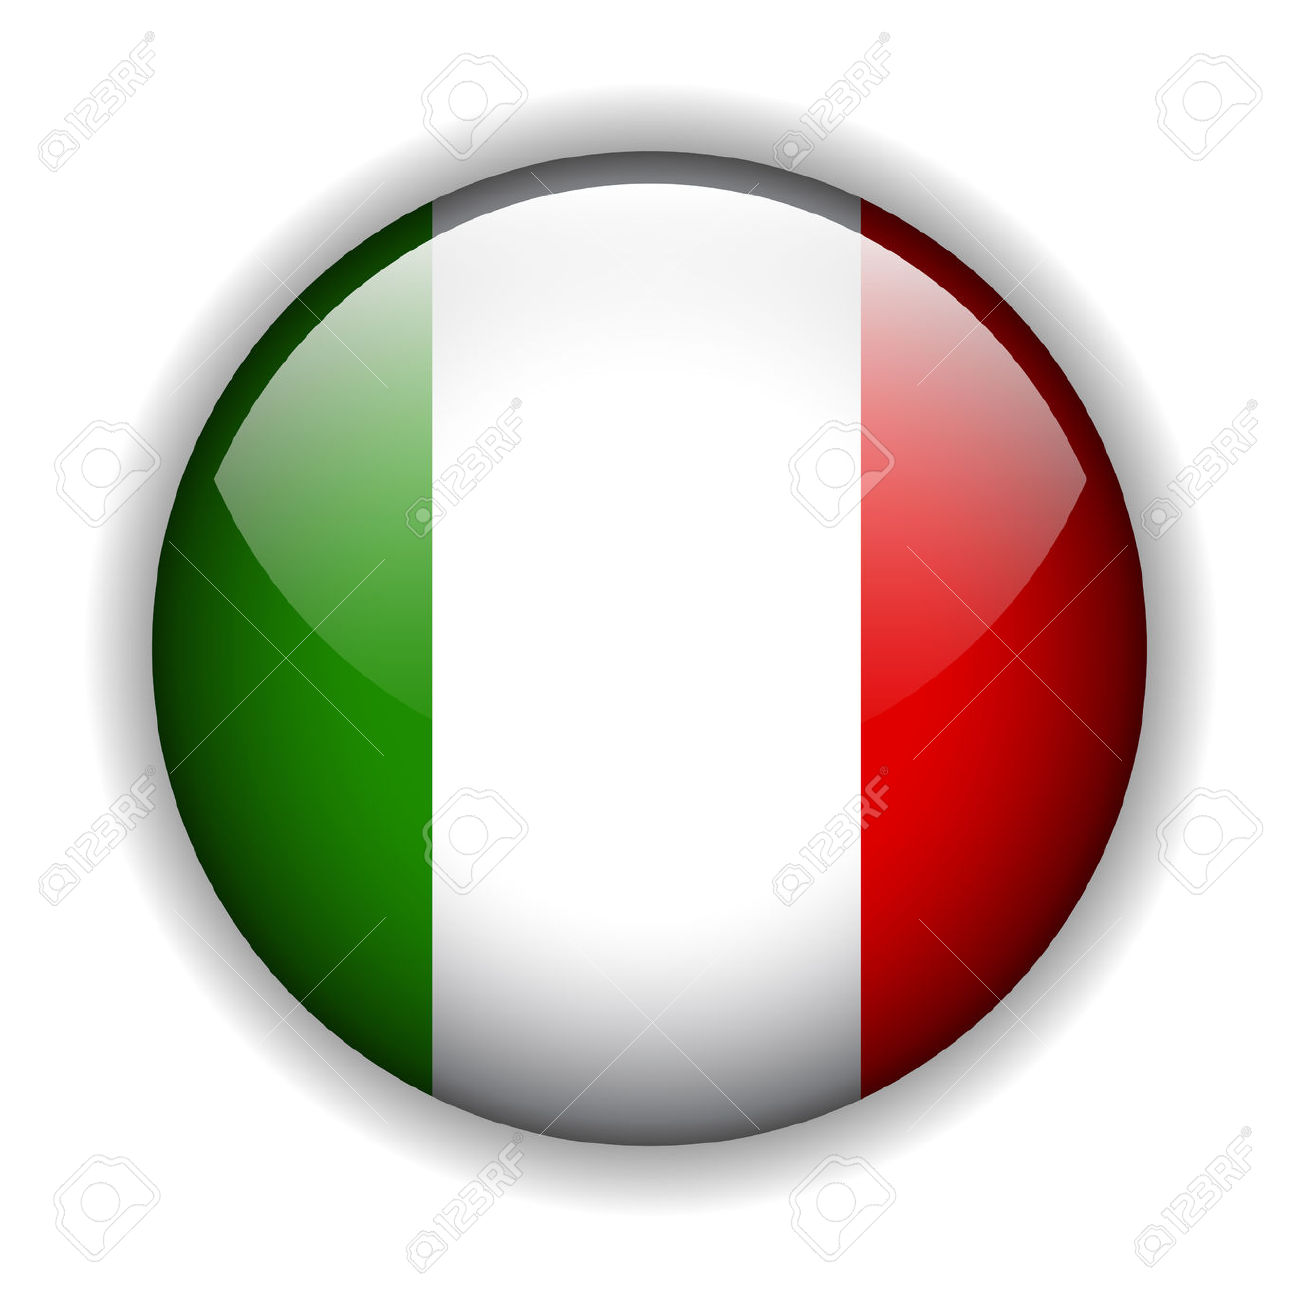 italiana clipart clipground frame vector download frame vector png